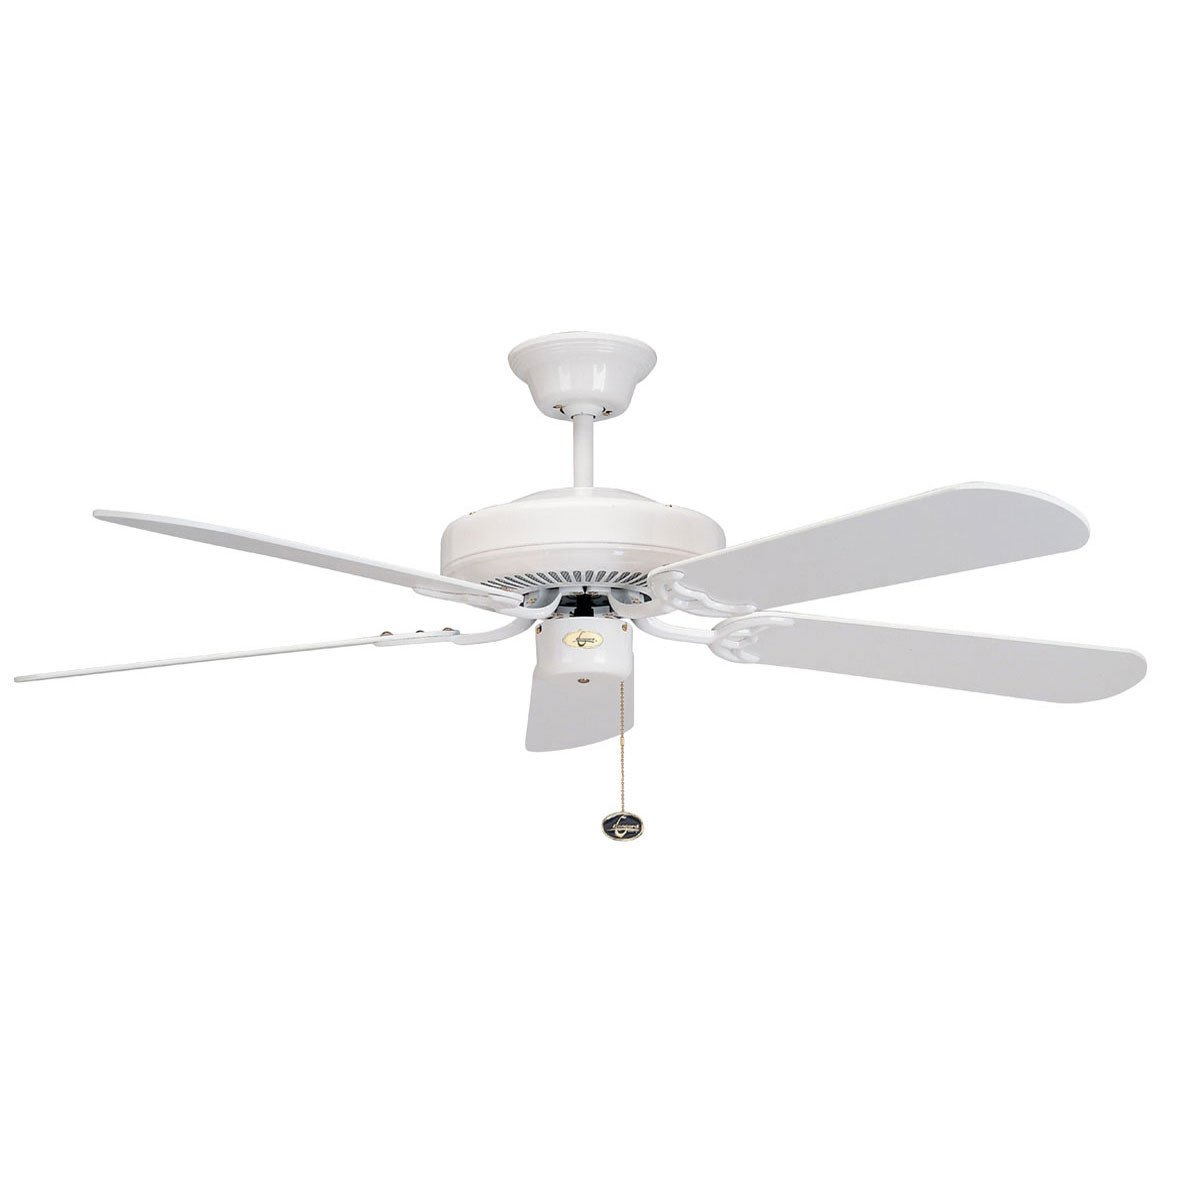 "Concord Fans Decorama Energy Saver Modern 52"" Small White Ceiling Fan"